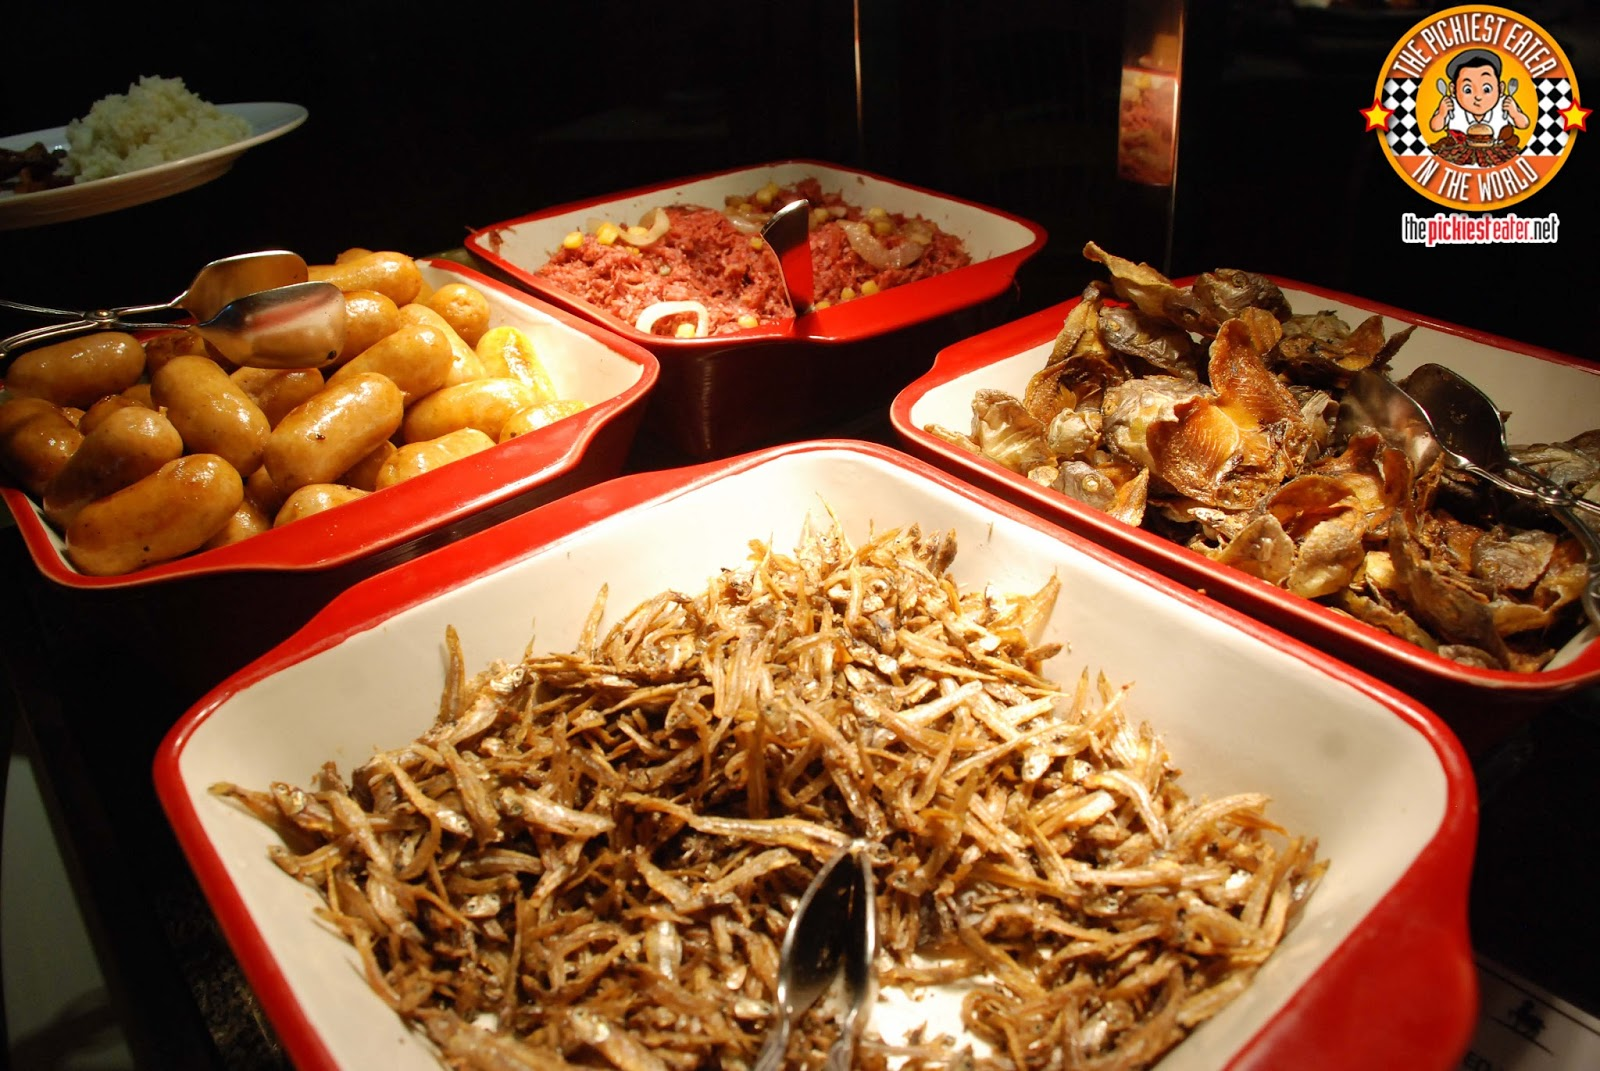 Cafe Marcos Pinoy Breakfast Fare Included Crispy Dilis And Danggit Which Was So Flavorful Neither Needed Any Vinegar As A Dip Yet I Noticed Few Seemed